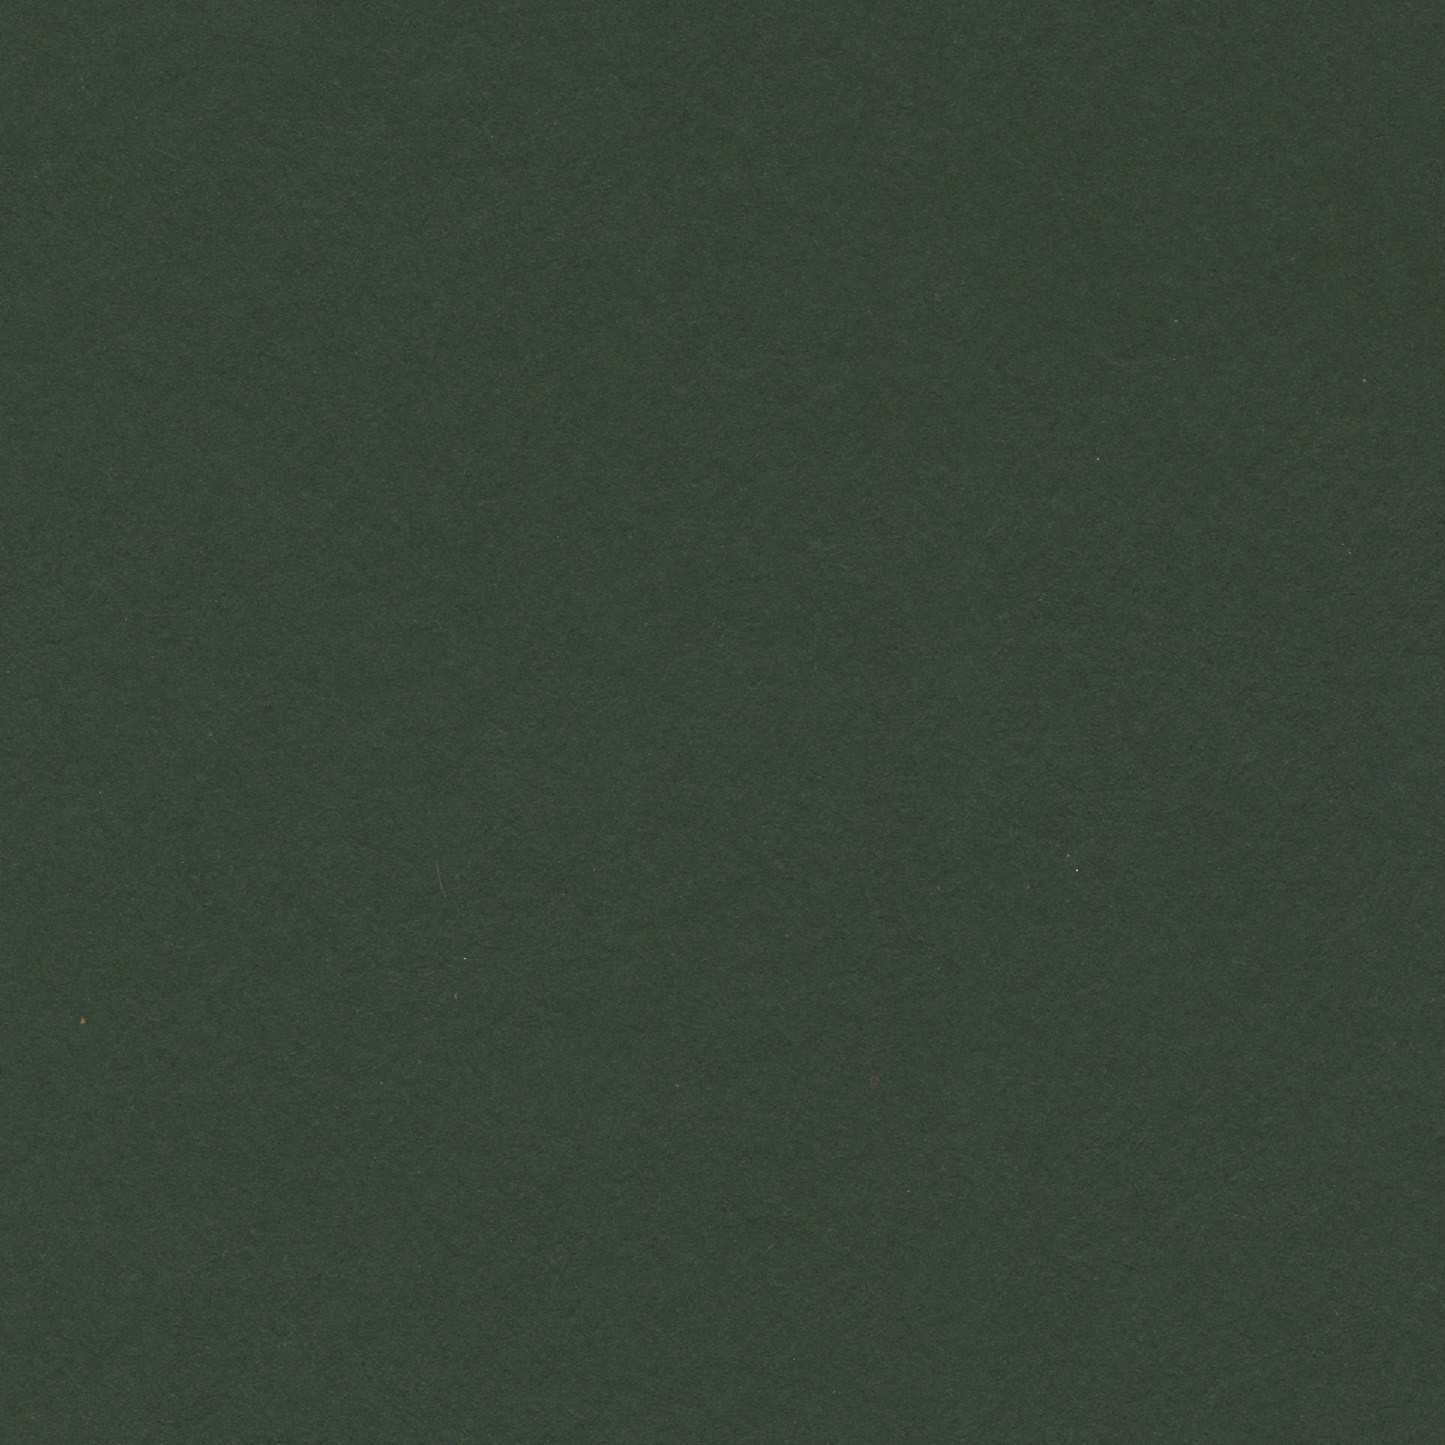 Dark green pantone pictures to pin on pinterest pinsdaddy for Dark sage green color